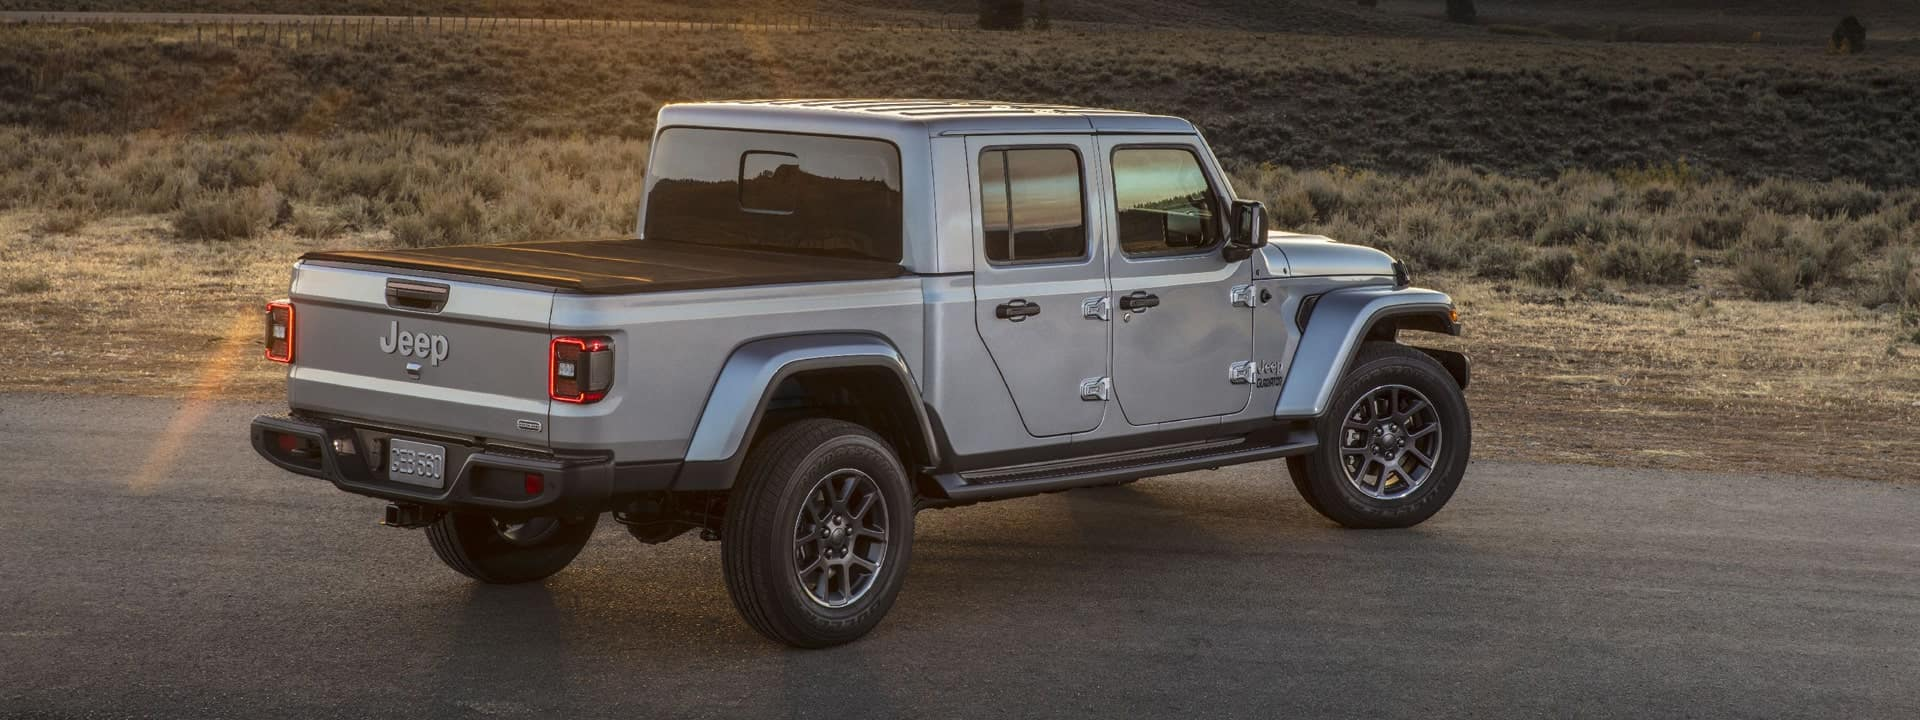 2021 Jeep Gladiator for Sale in Oklahoma